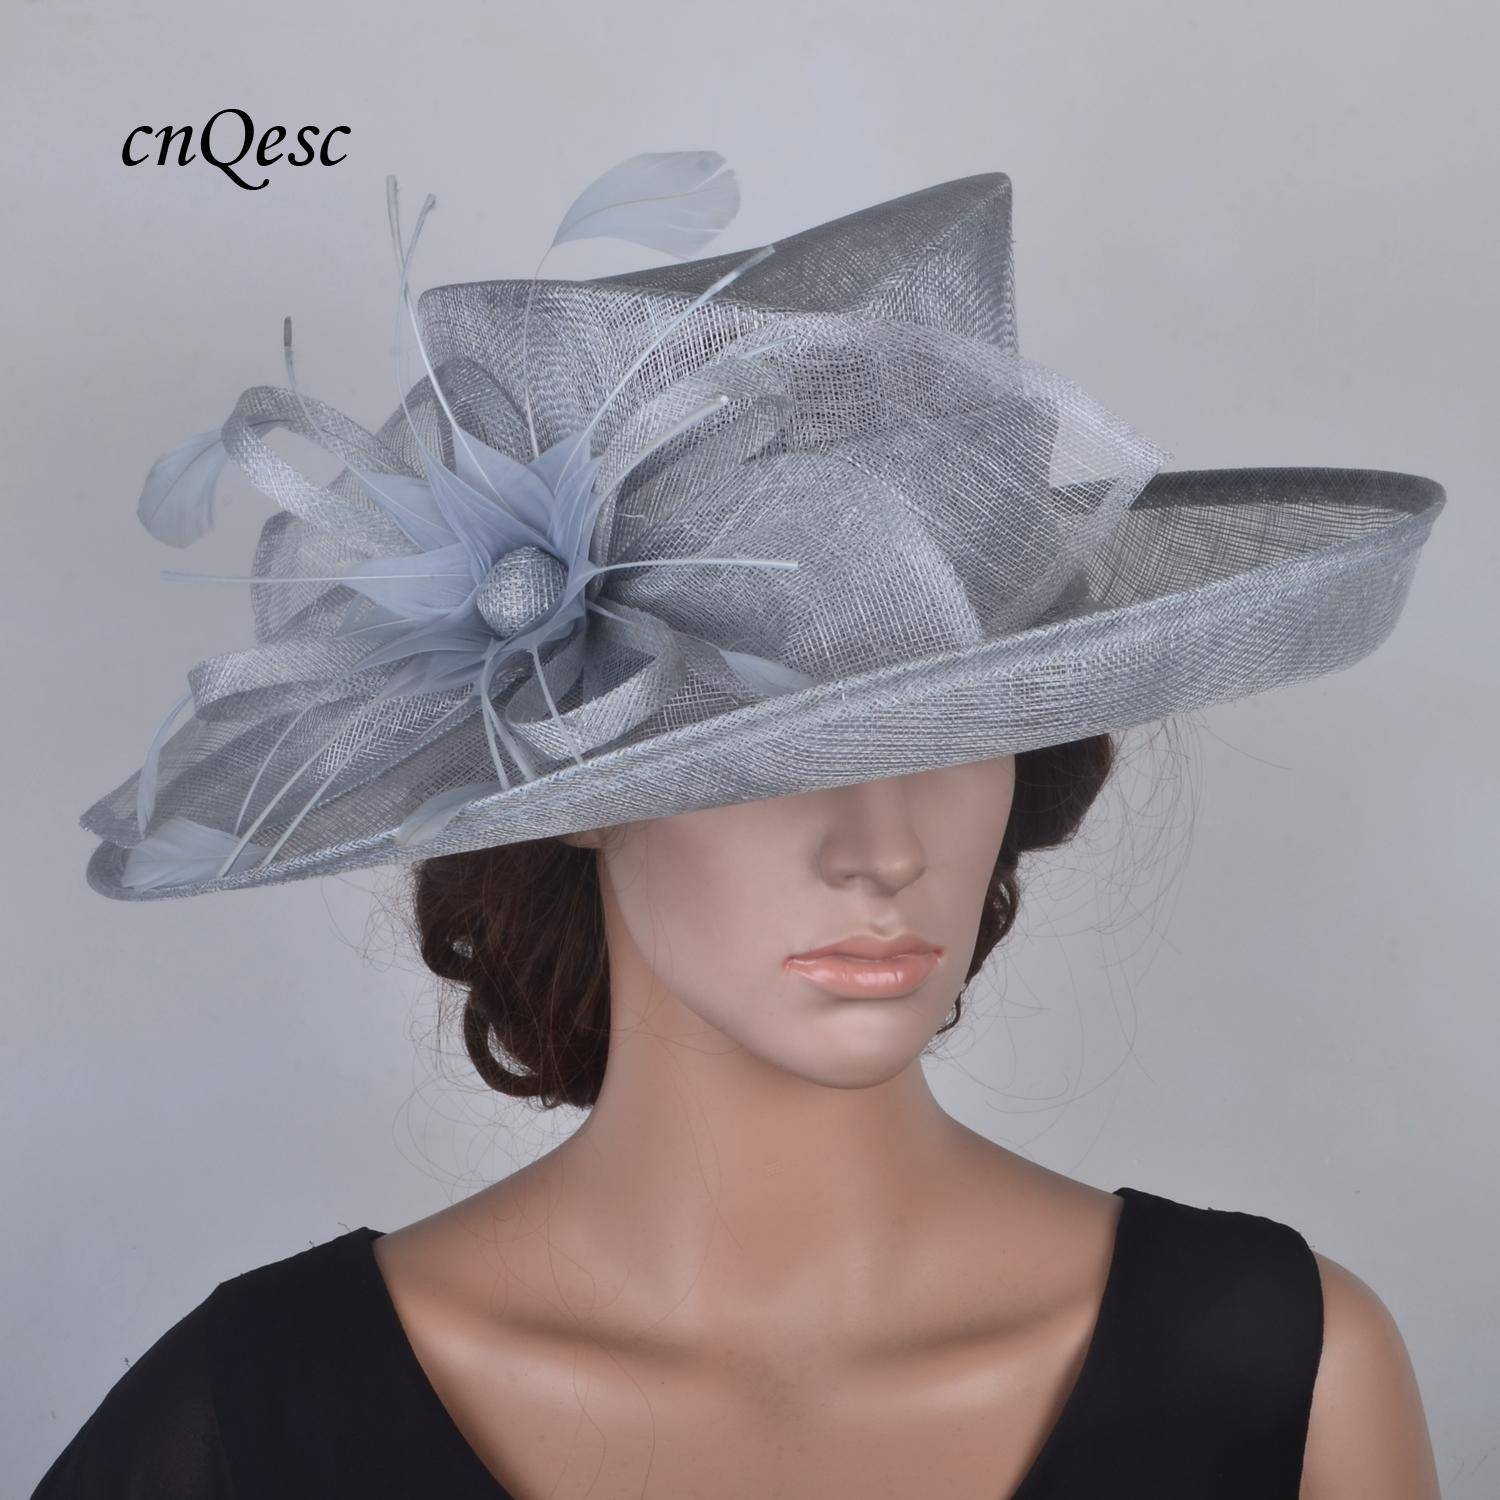 b3186bfd1 Light grey Elegant Large Sinamay Church Hat with feather flower for  wedding,kentucky derby,church,party,Ascot